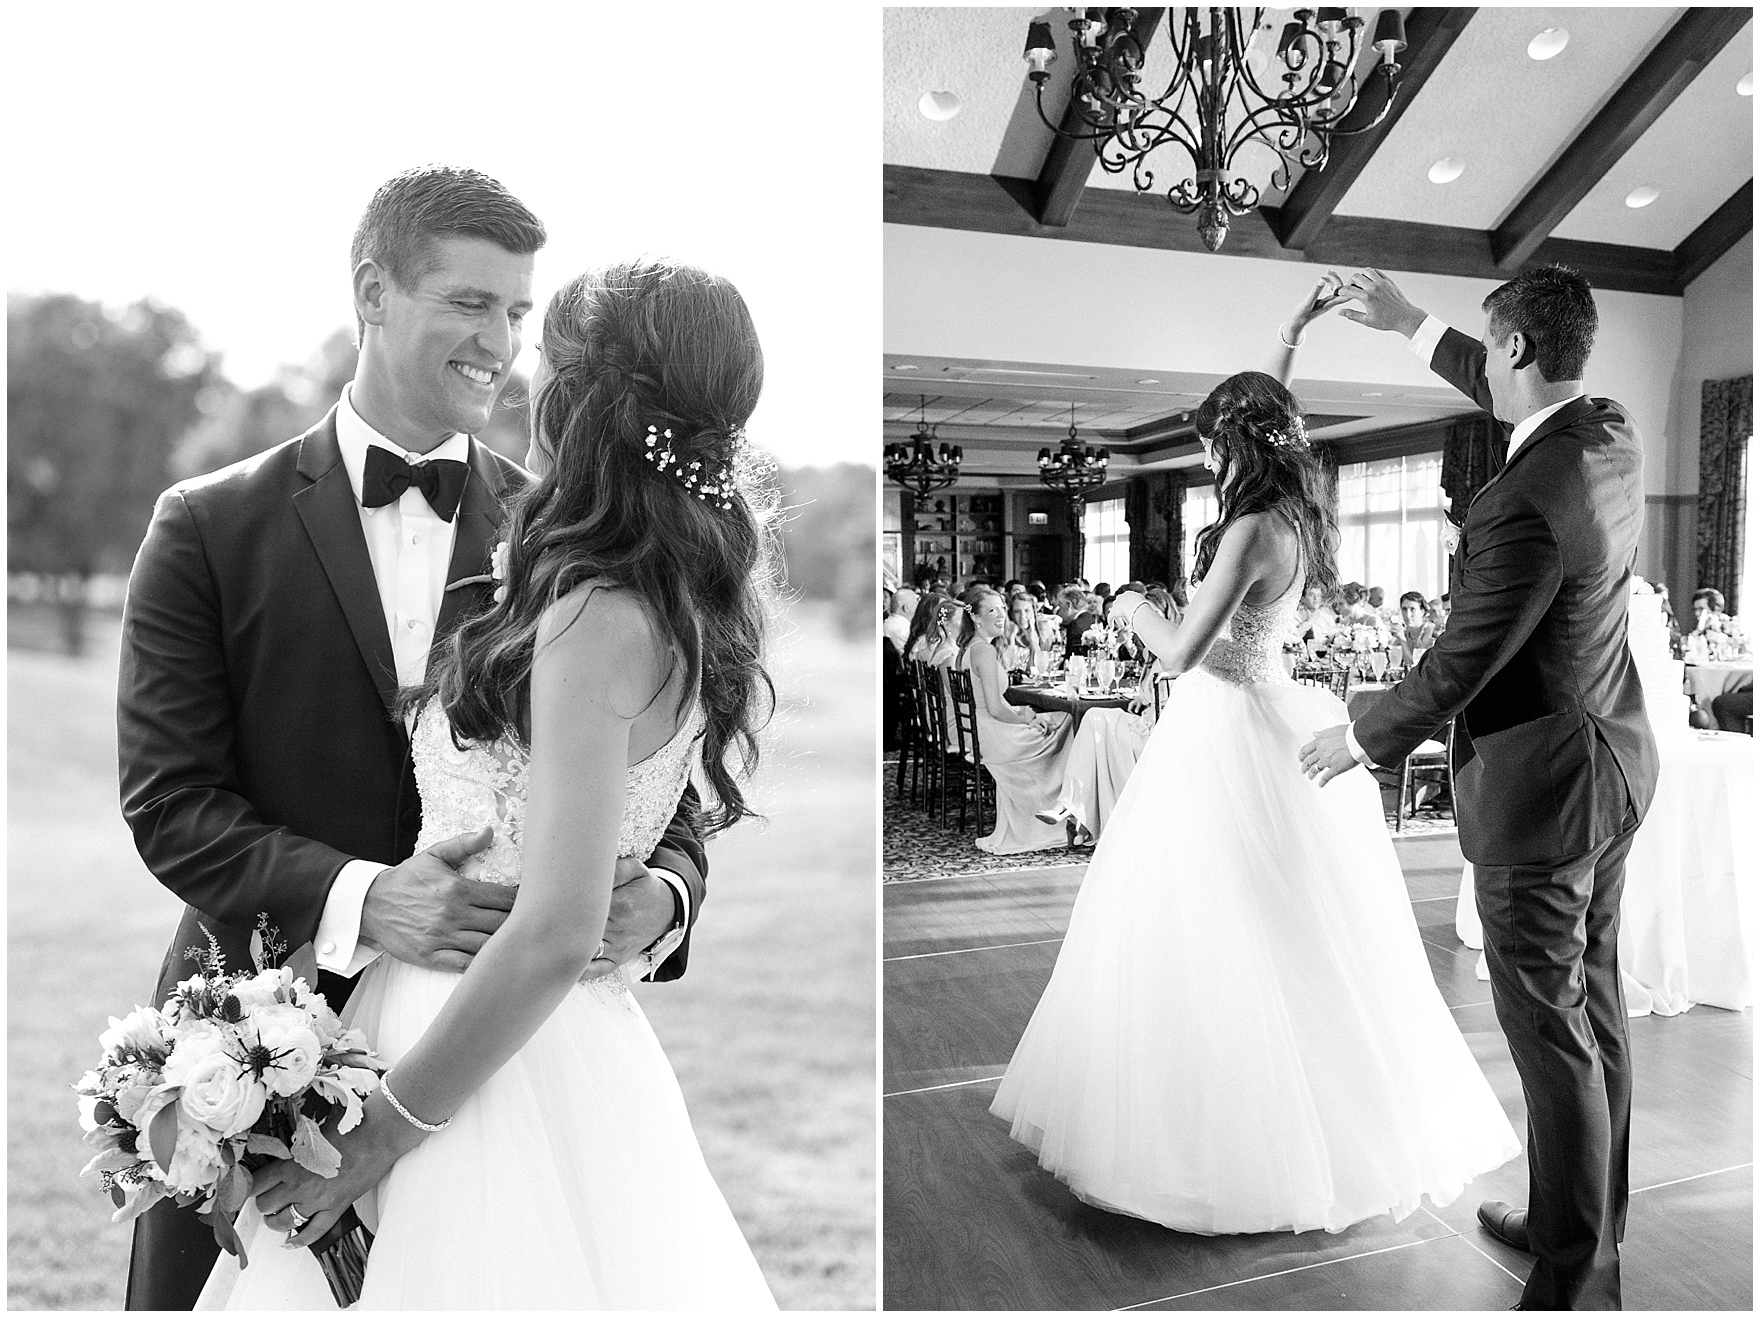 The bride and groom embrace during a Biltmore Country Club Barrington wedding.